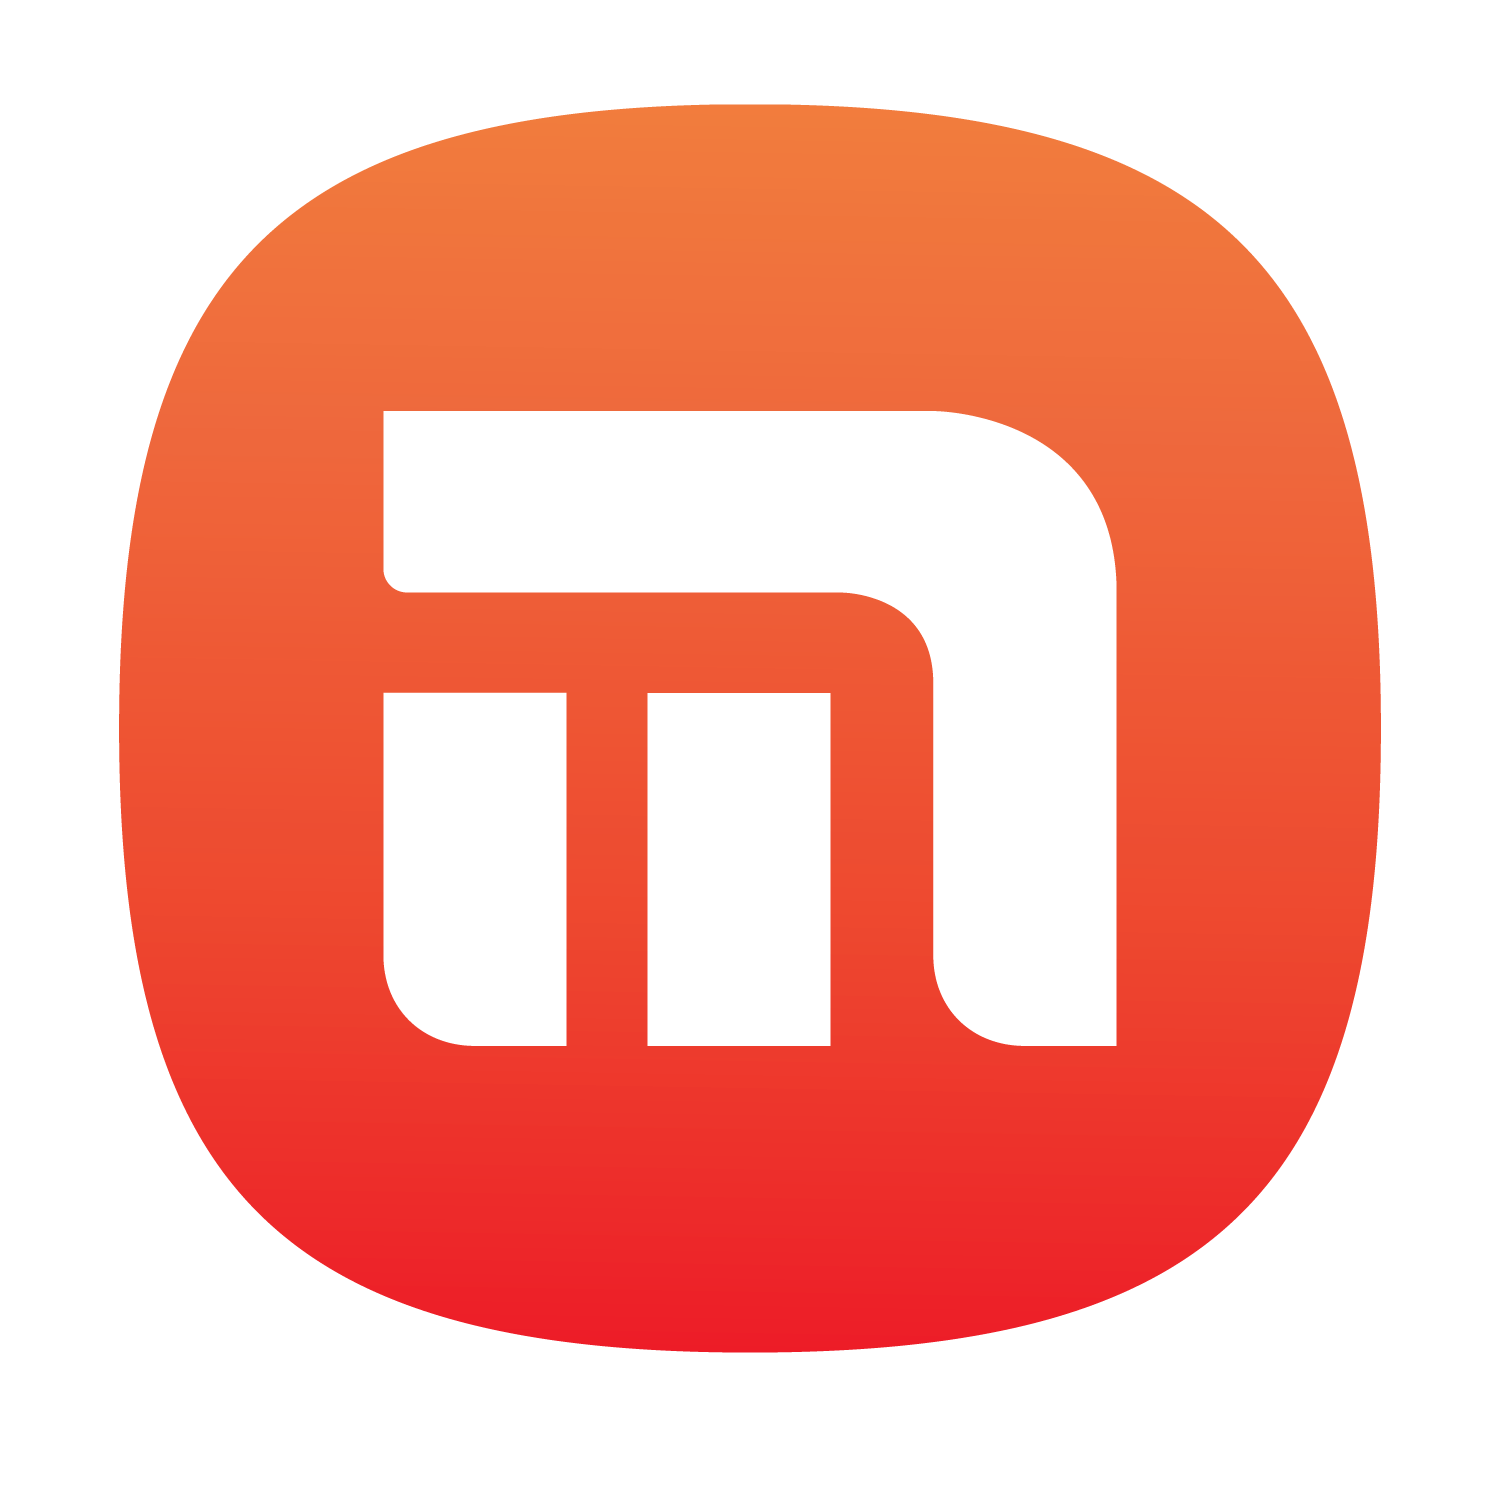 Mxit 7 downloaded 7.4 million times and daily average usage on the rise. However, the company also reported a fall in monthly active users reports appsafrica.com